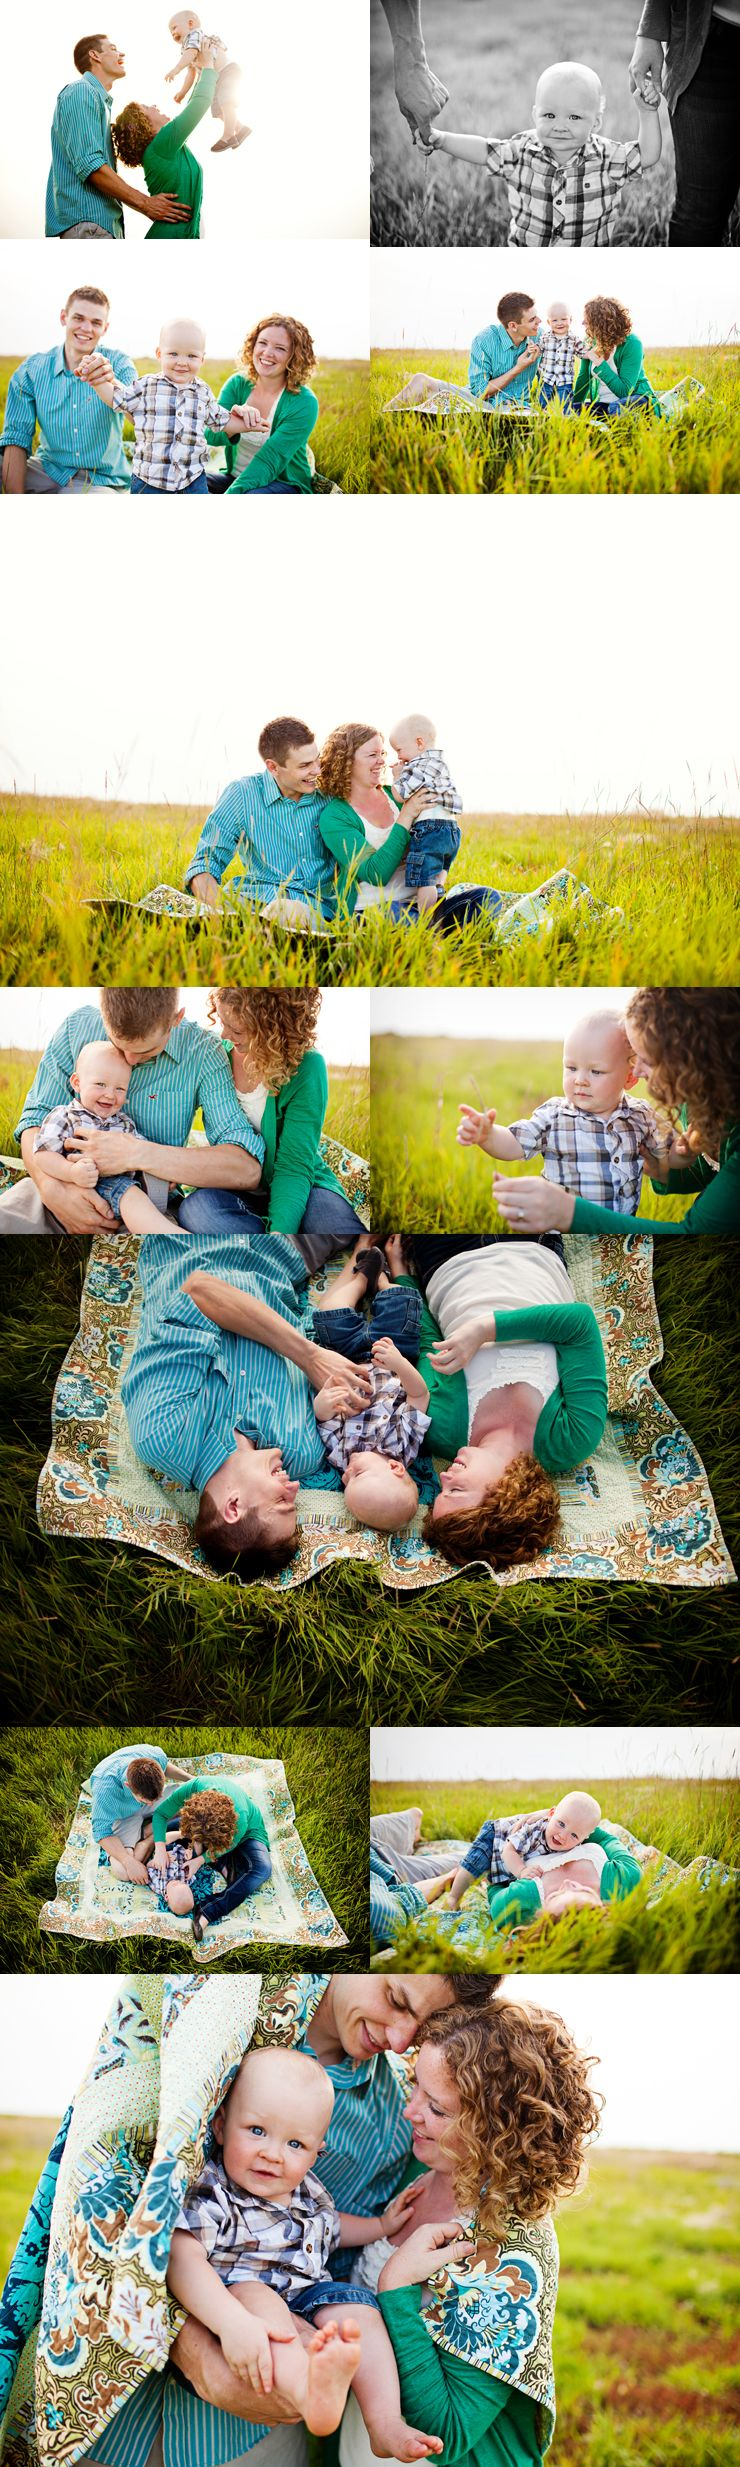 I like the idea of using the blanket in the photo!! edmonton-family-photography-kelsy-nielson